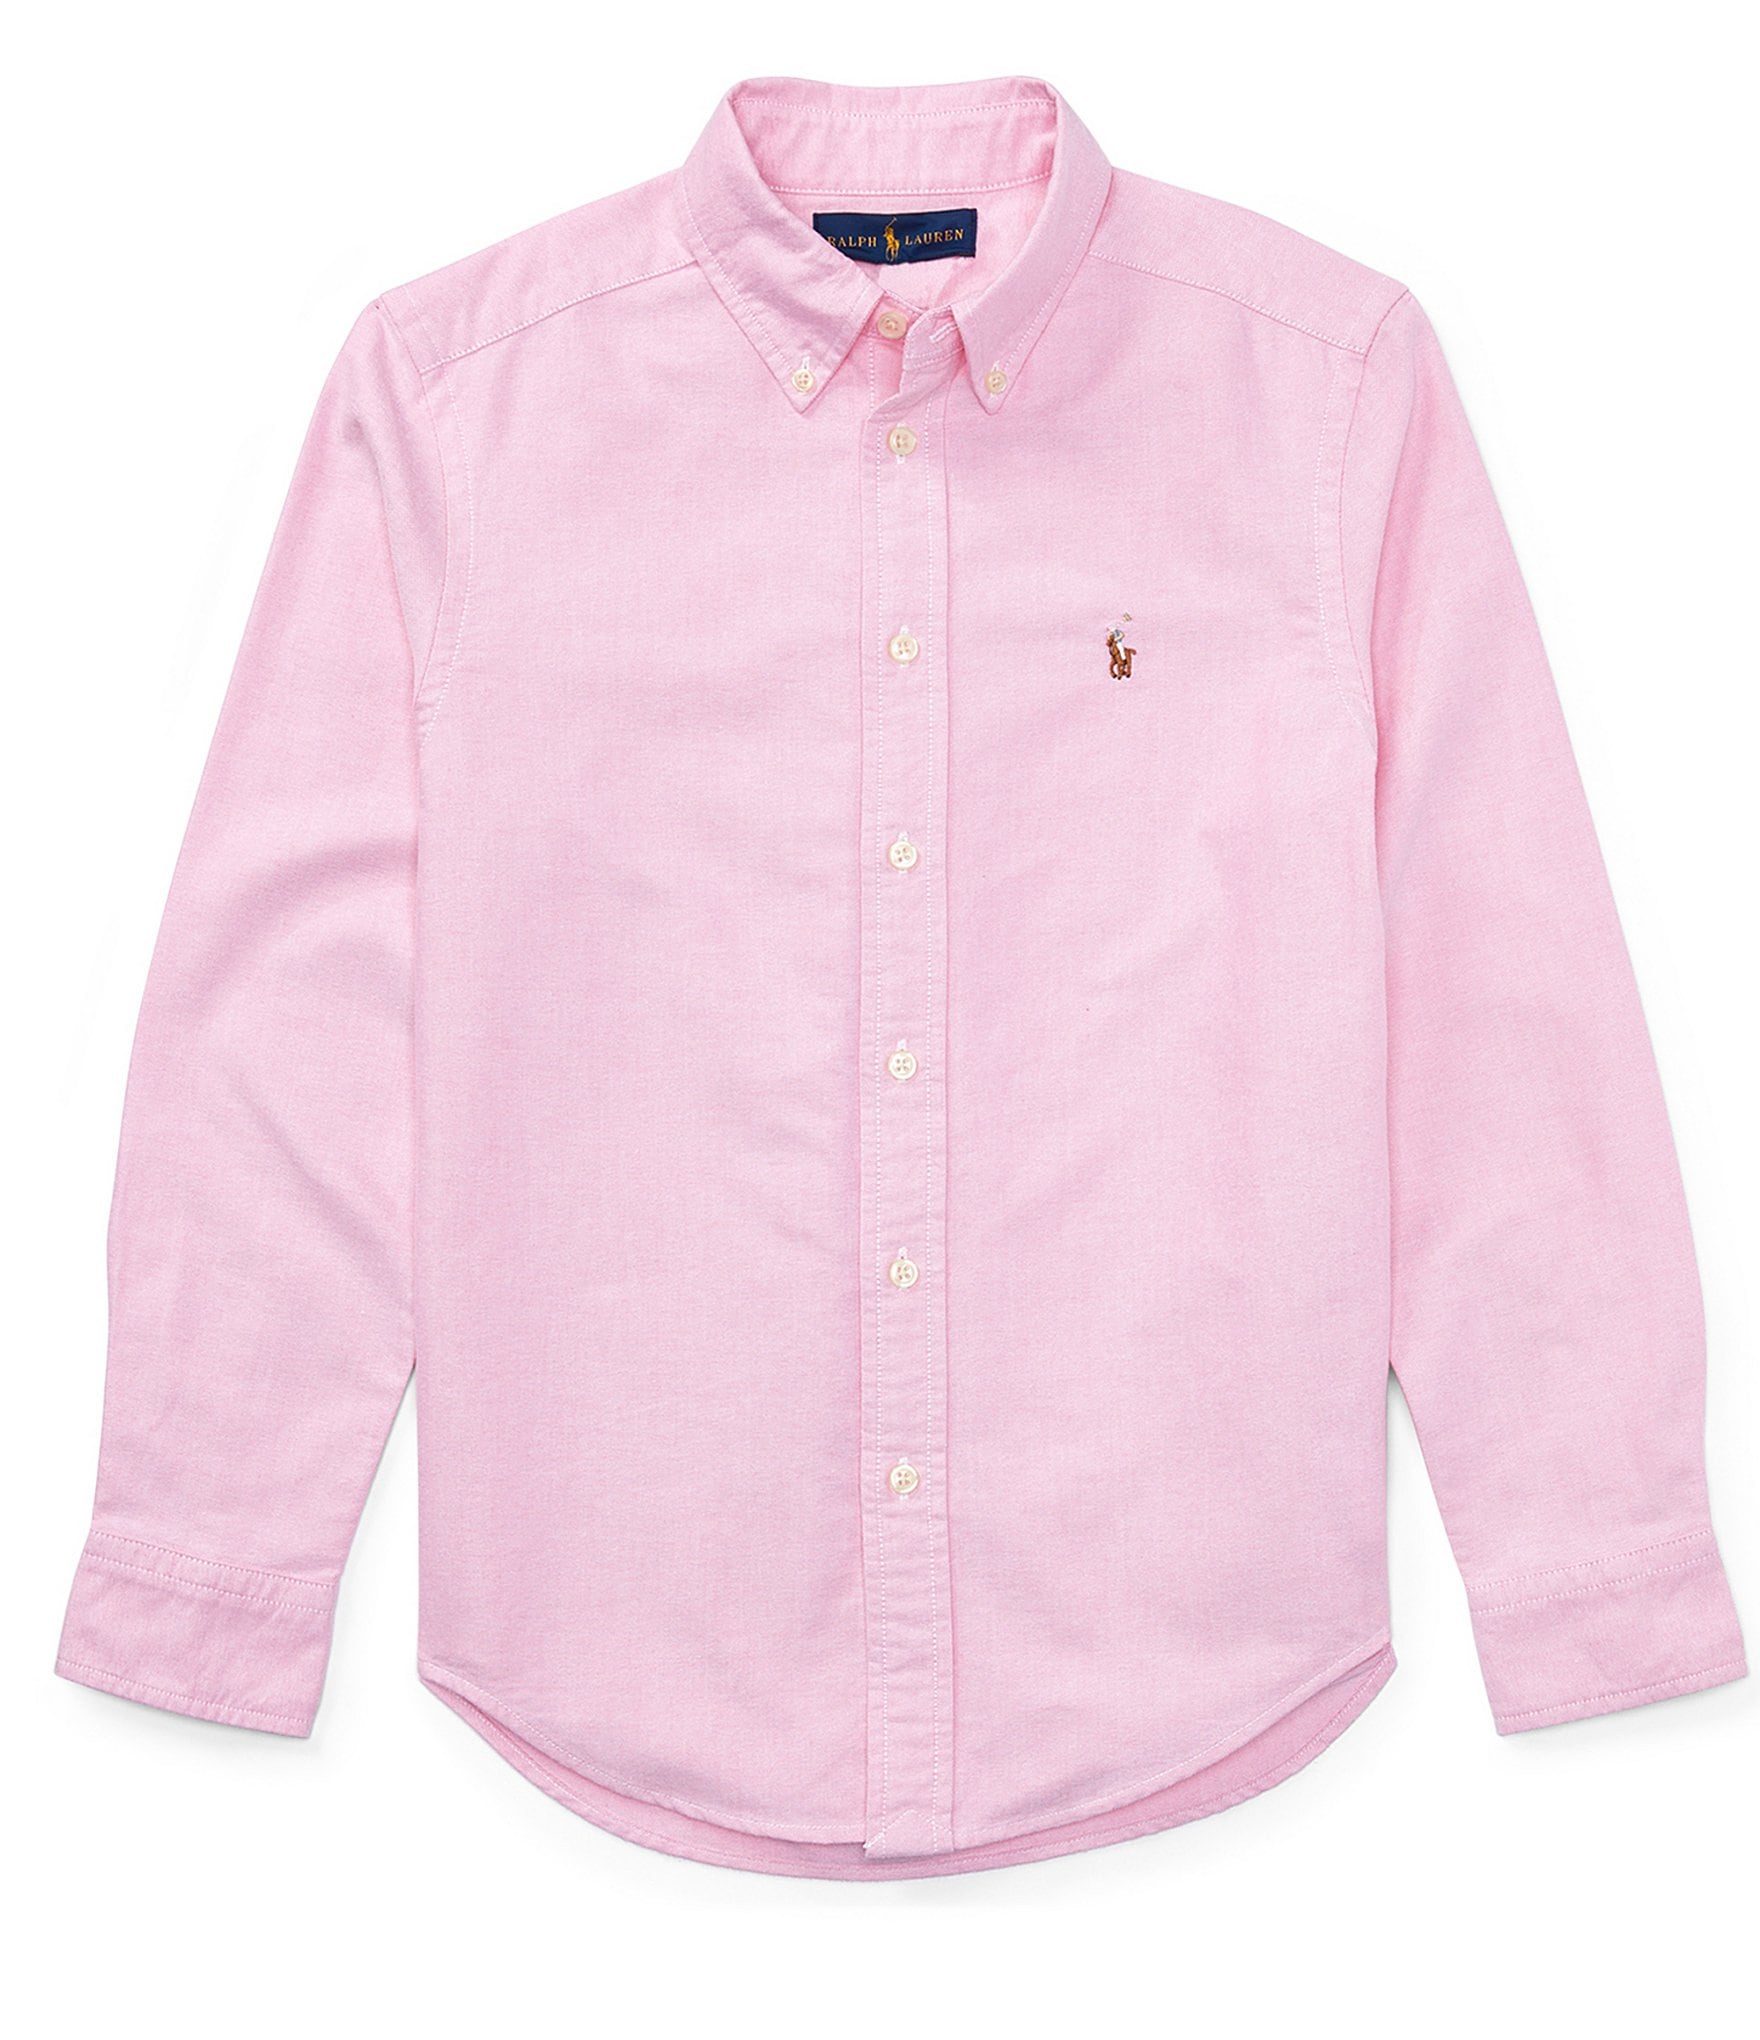 Ralph Lauren Childrenswear Big Boys Long Sleeve